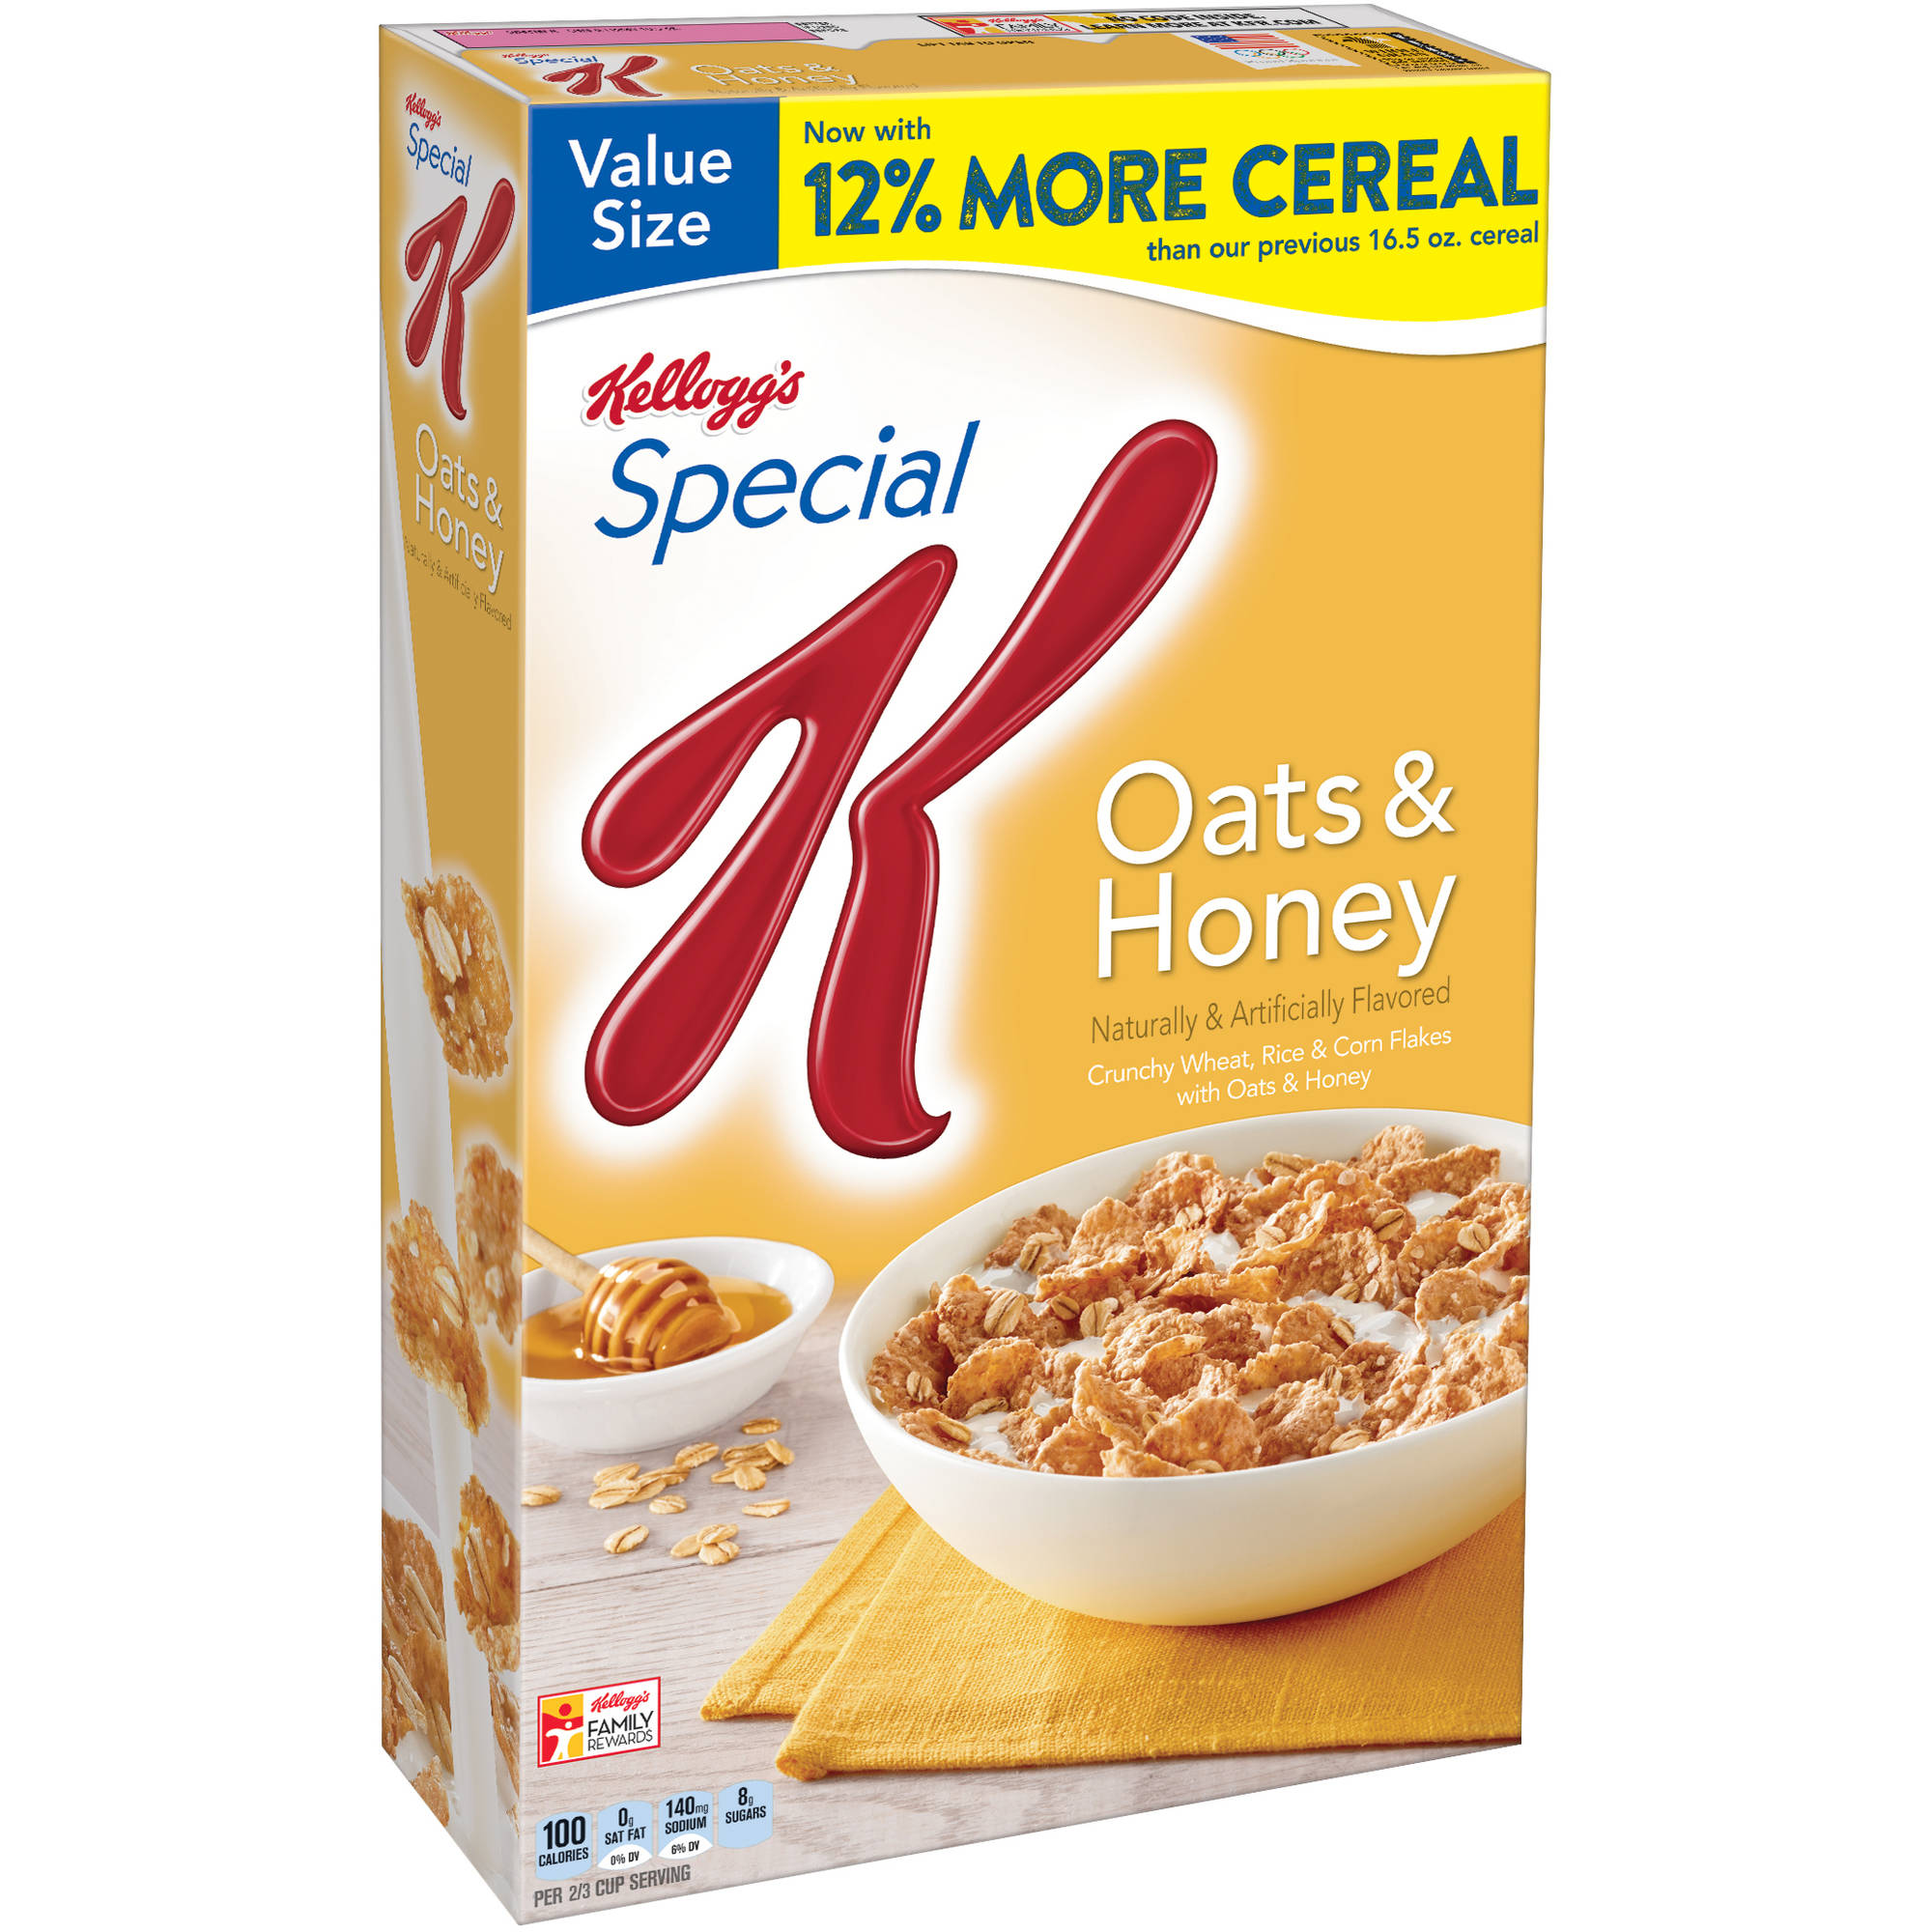 Kellogg's Special K Oats & Honey Cereal, 18.5 oz